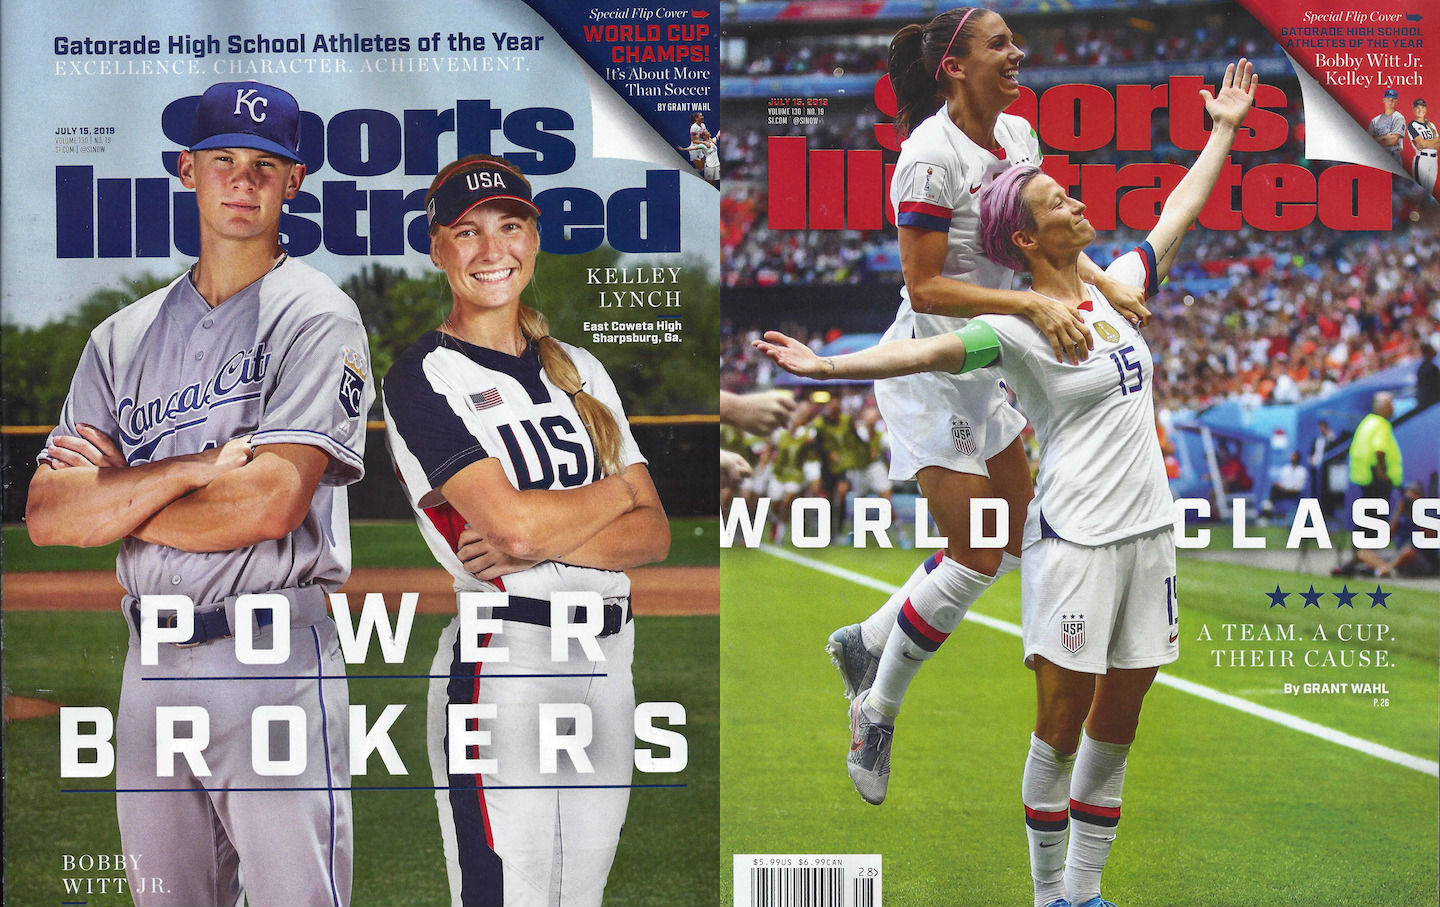 Sports Illustrated magazine covers